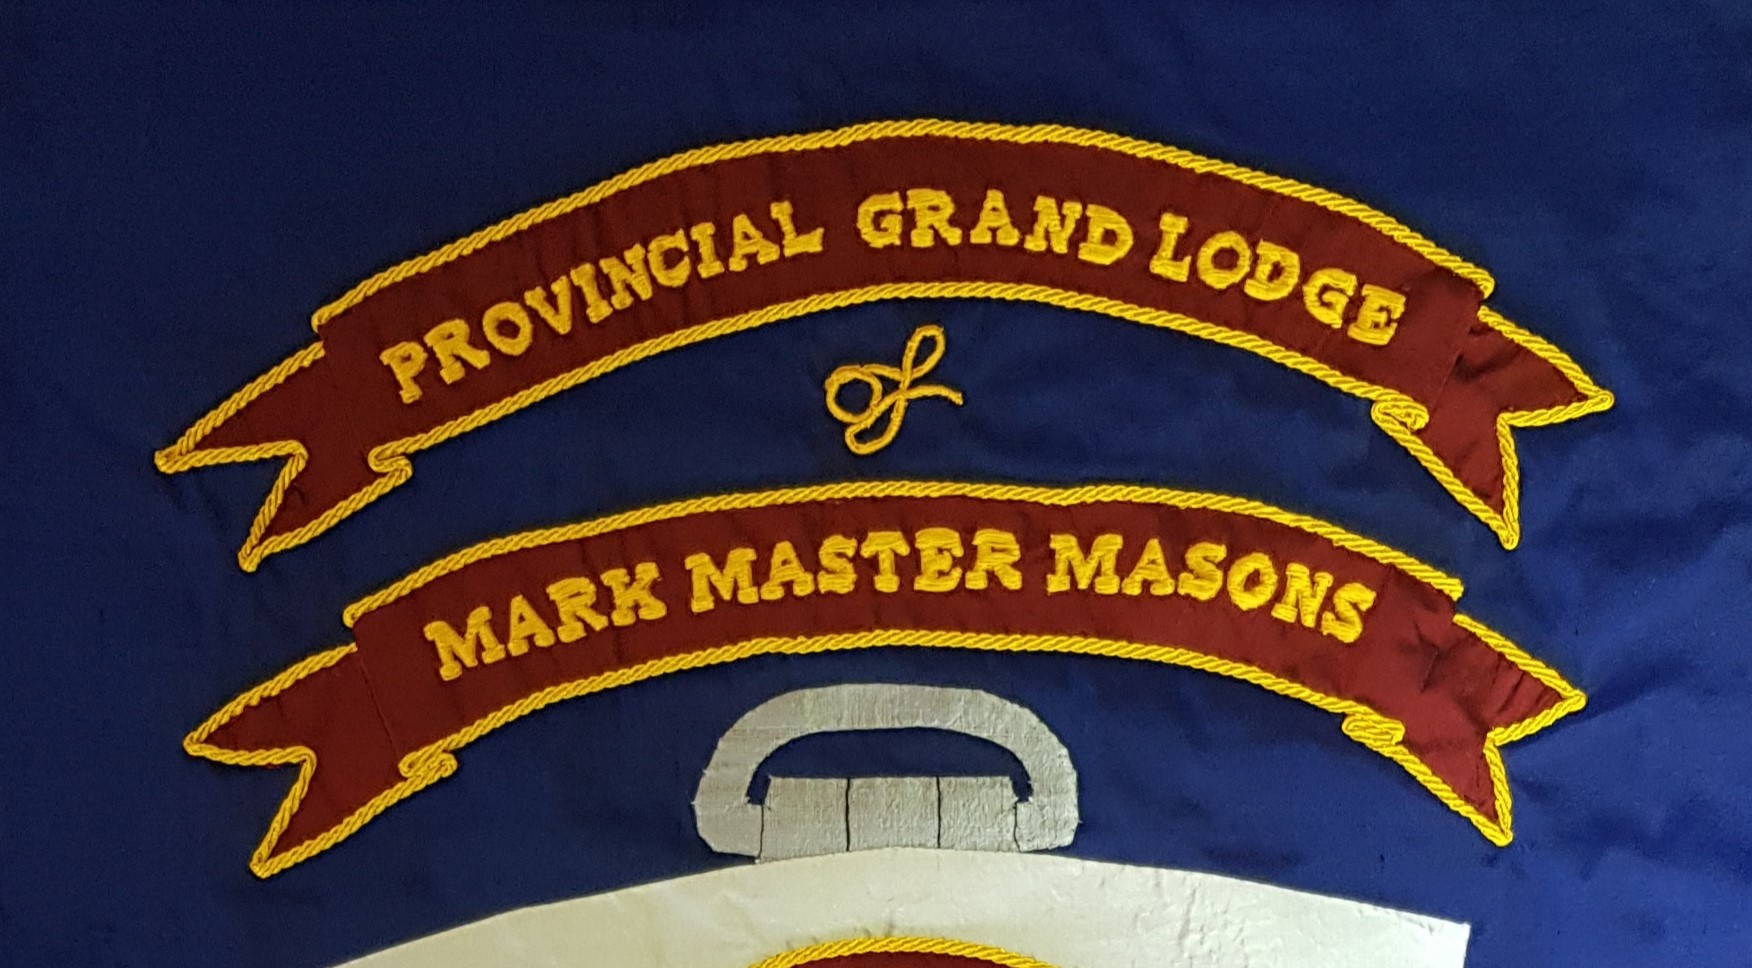 Mark Masonry Degree Microsite